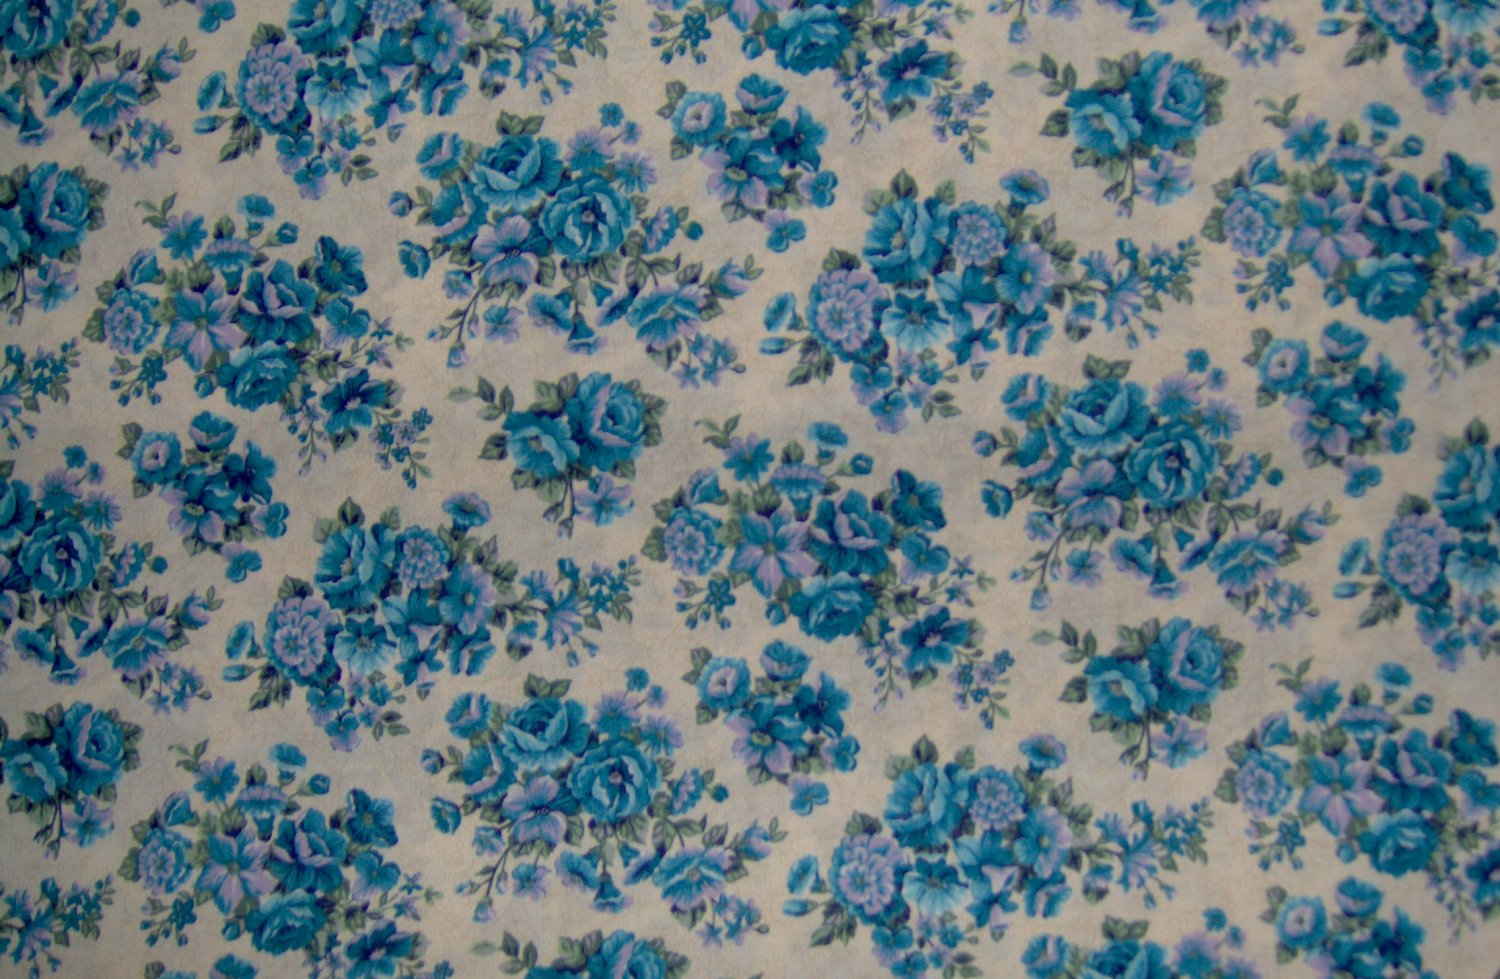 7/8+ Yard Blue & Lavender Flowers on Tan Toile Vines Cotton Fabric Cranston Print Works VIP Bolt End